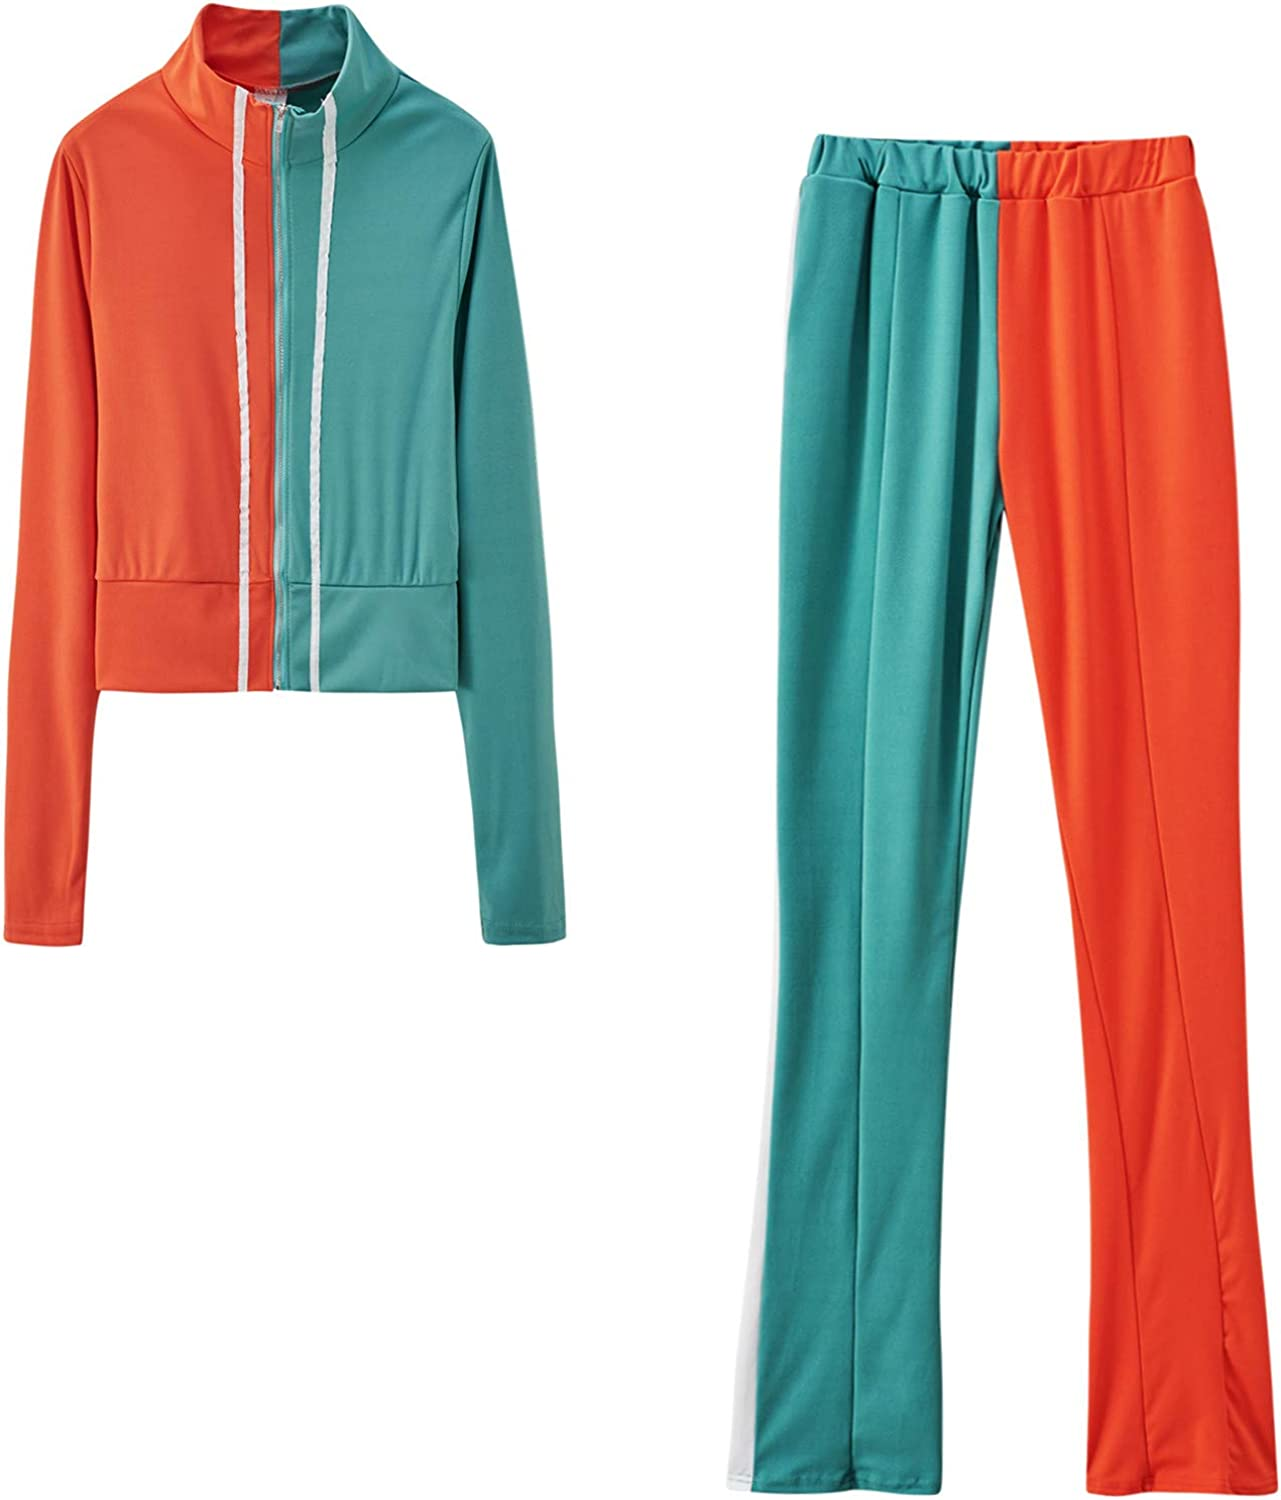 Kexle Women Splicing Super beauty product restock quality top Fashion Zipper Fixed price for sale Tracksui and Sweatshirt Pant